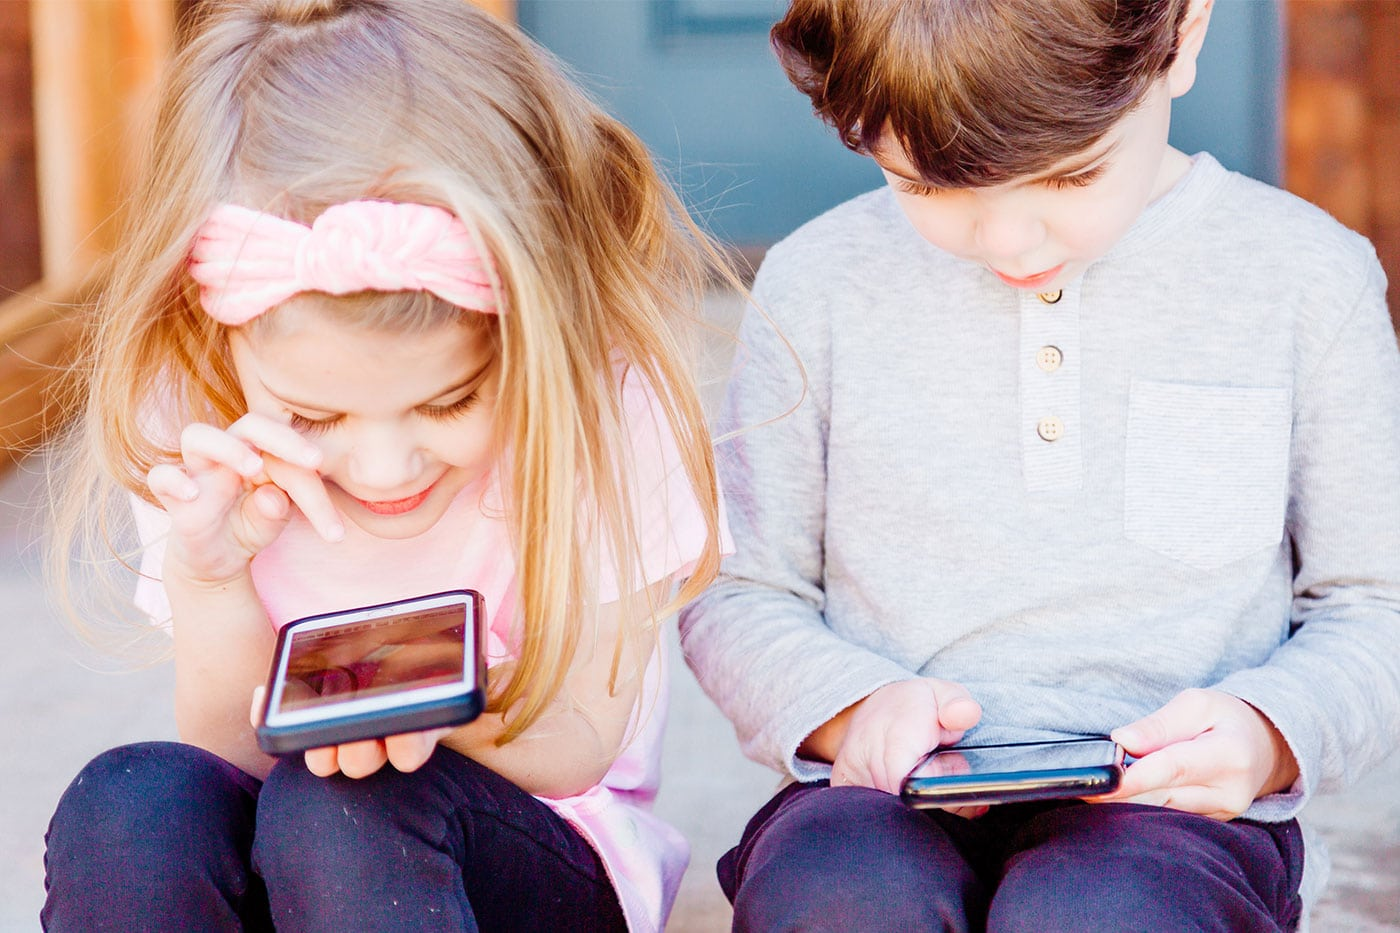 Two kids playing on their phones.